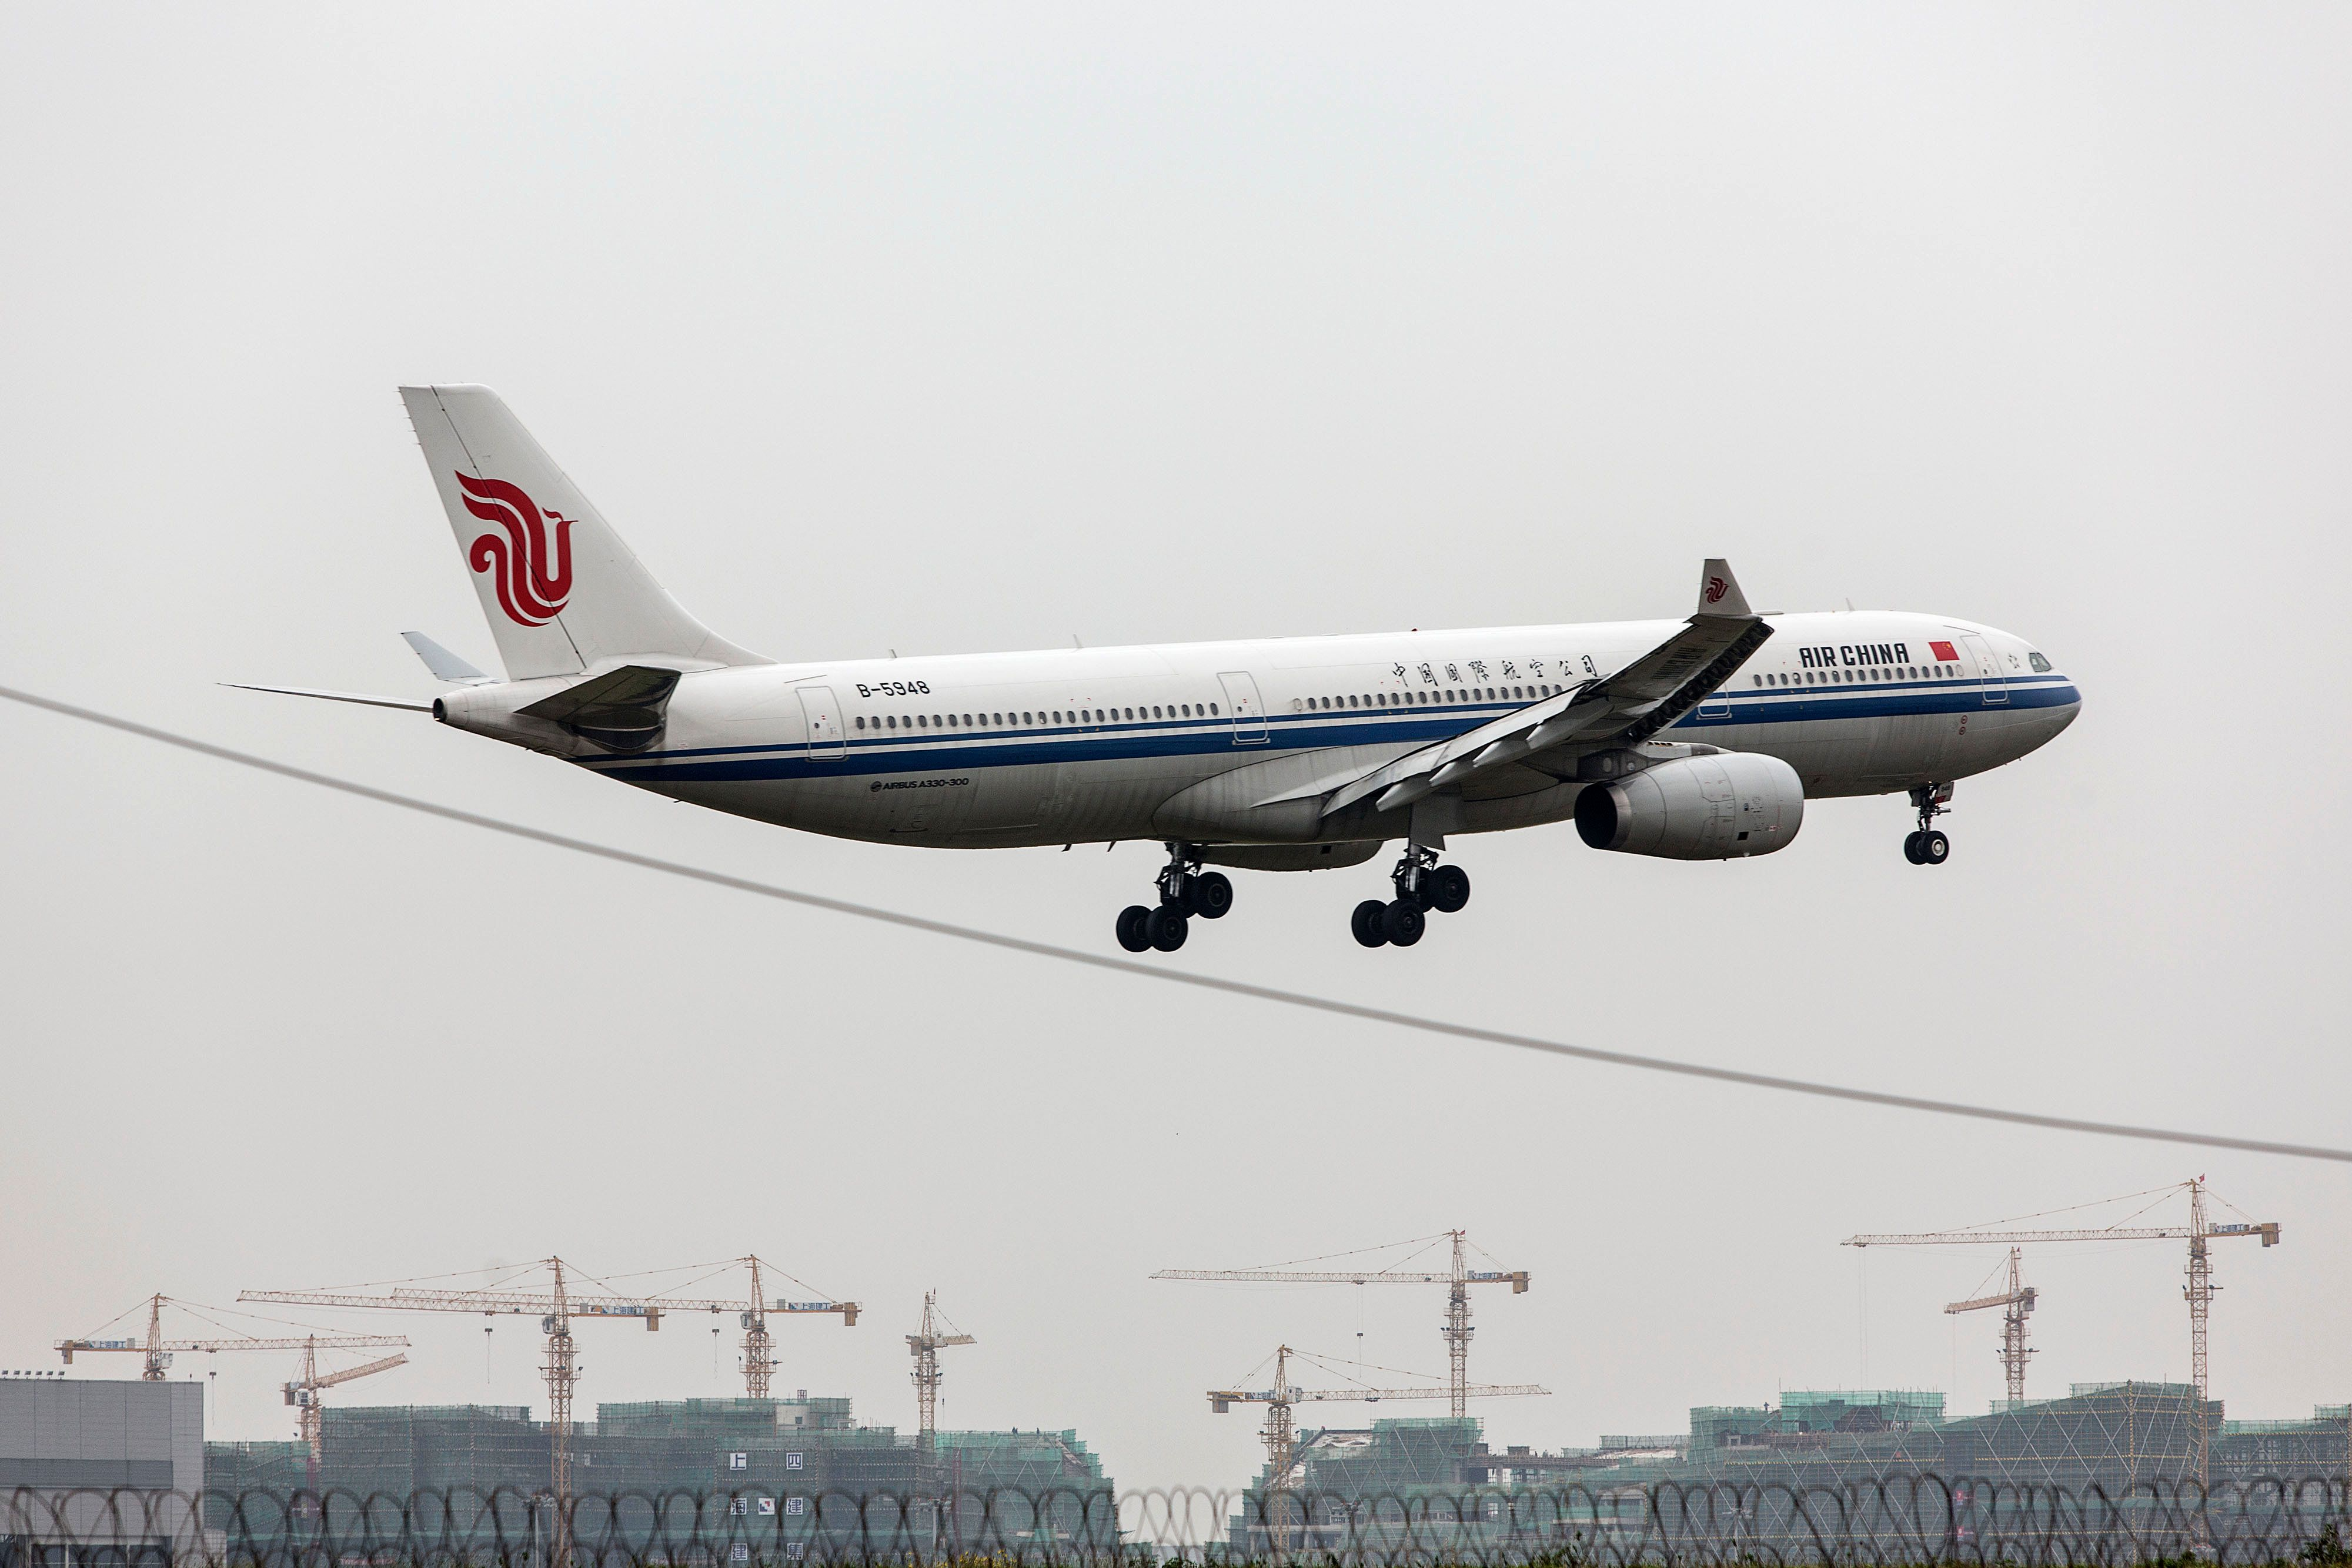 An Air China Ltd. aircraft flies over cranes operating at construction sites as it approaches to land at Hongqiao Airport in Shanghai, China, on Friday, Oct. 23, 2015. China is considering combining some operations of the nations three biggest airlines as part of a broad reform of its state-owned enterprises, people familiar with the plans said. Photographer: Qilai Shen/Bloomberg via Getty Images